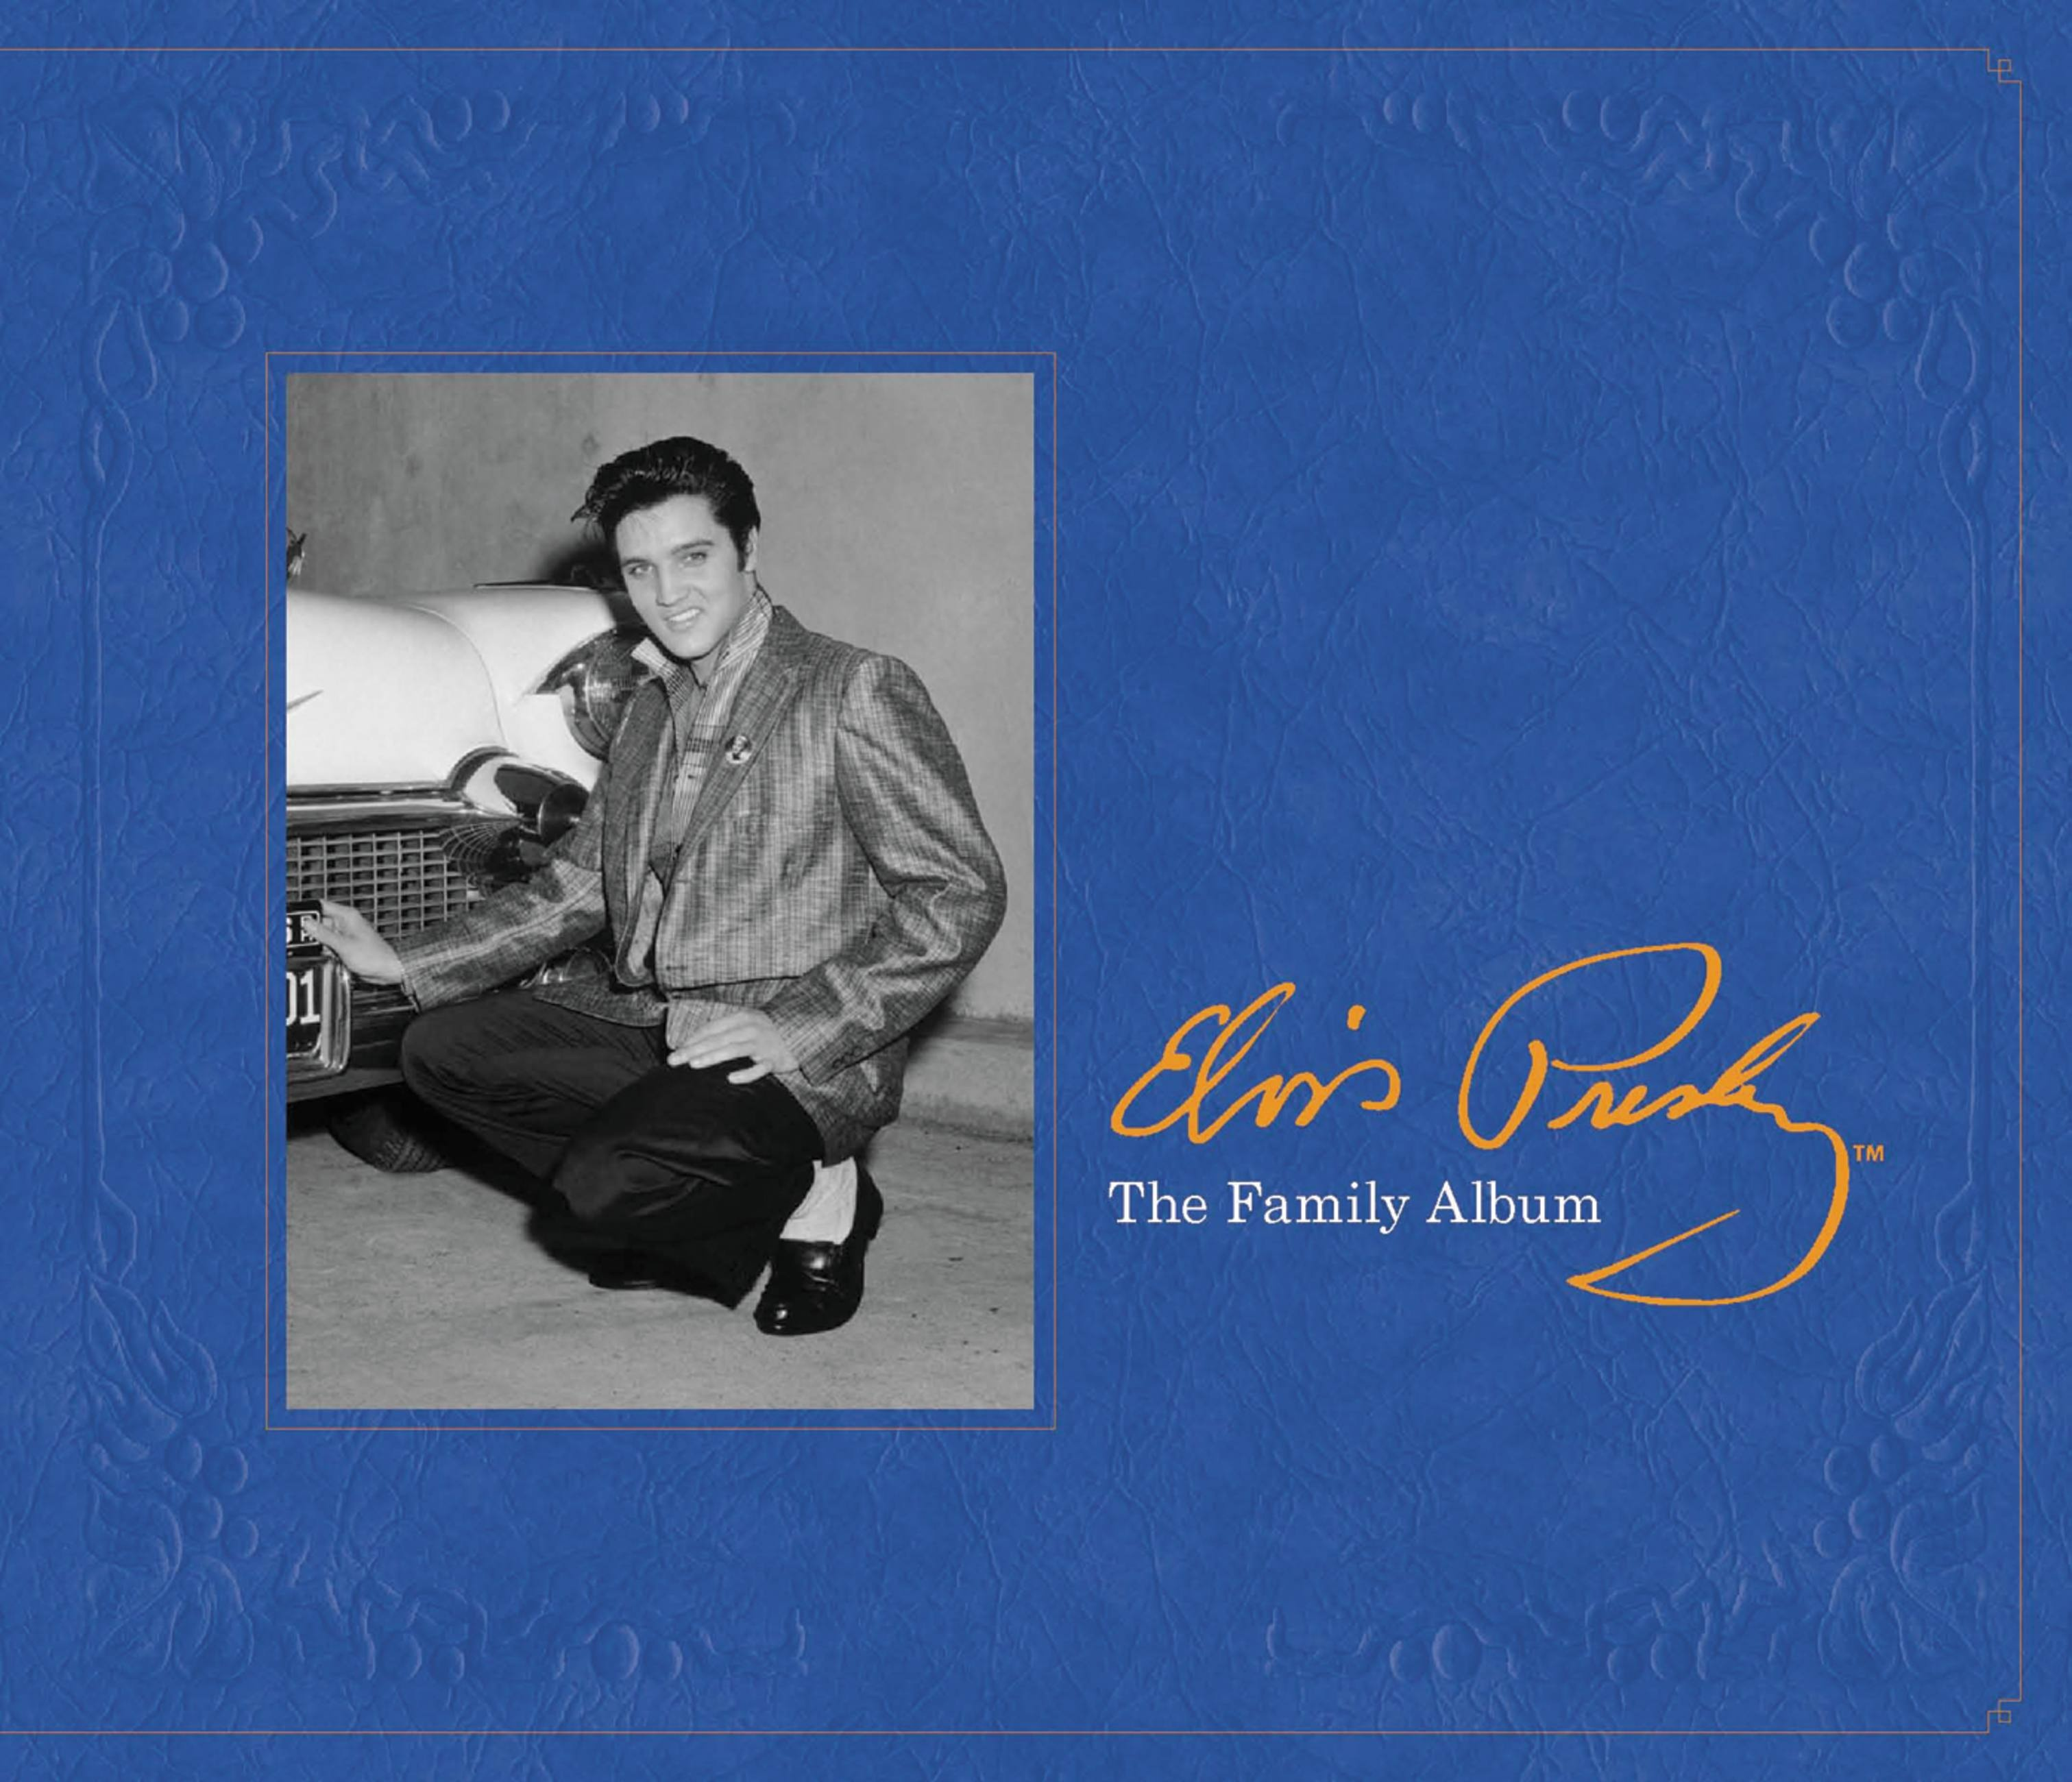 Elvis Presley: The Family Album